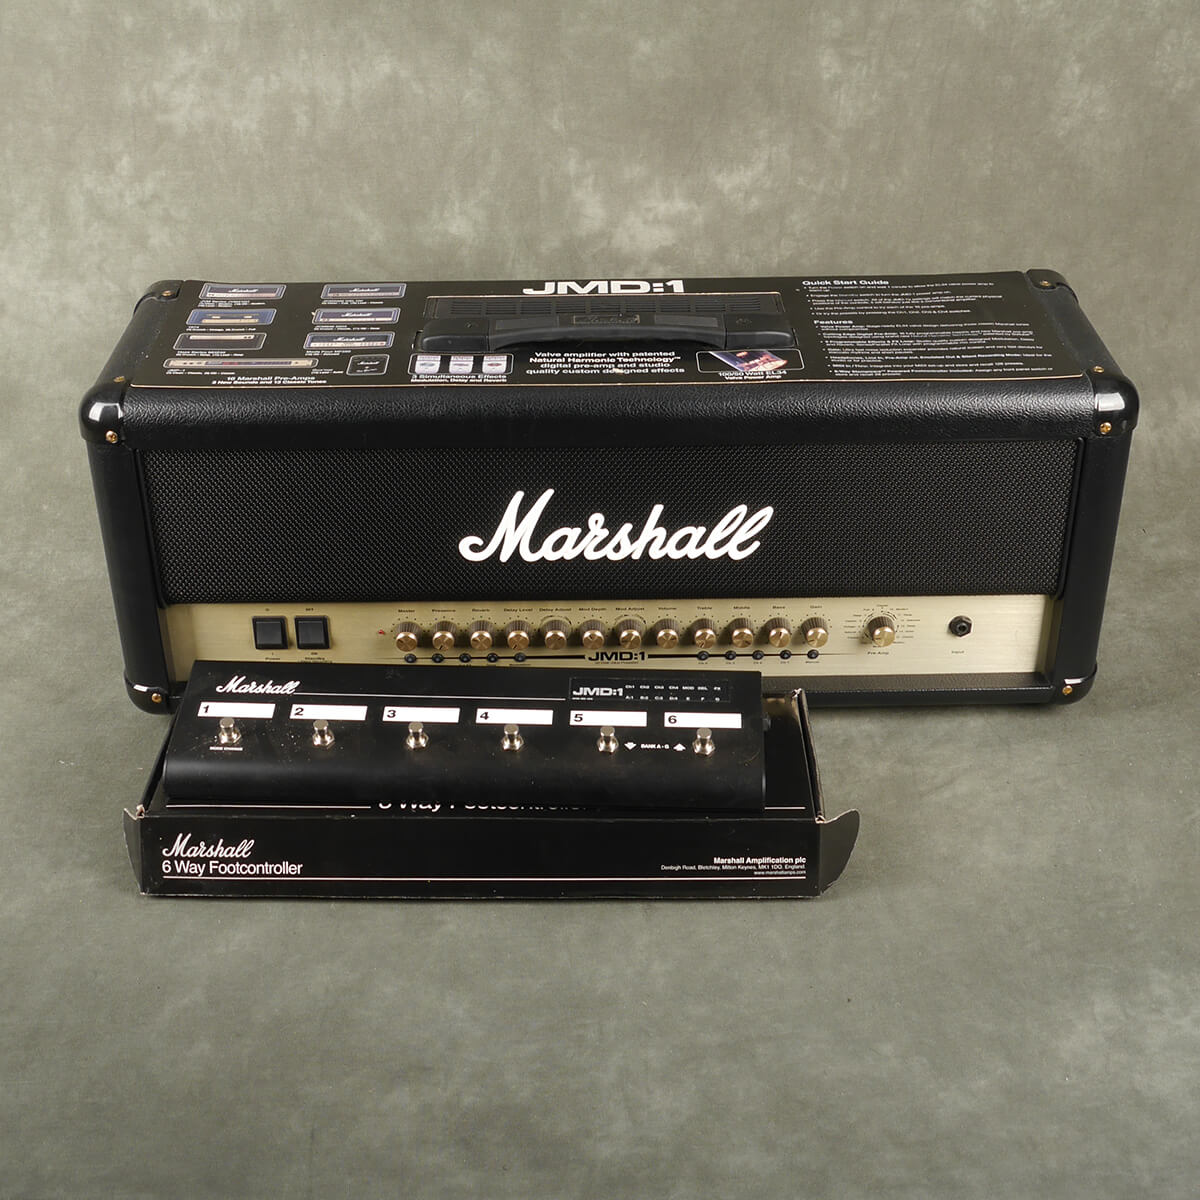 Marshall JMD 1 Amplifier Head & Footswitch - 2nd Hand